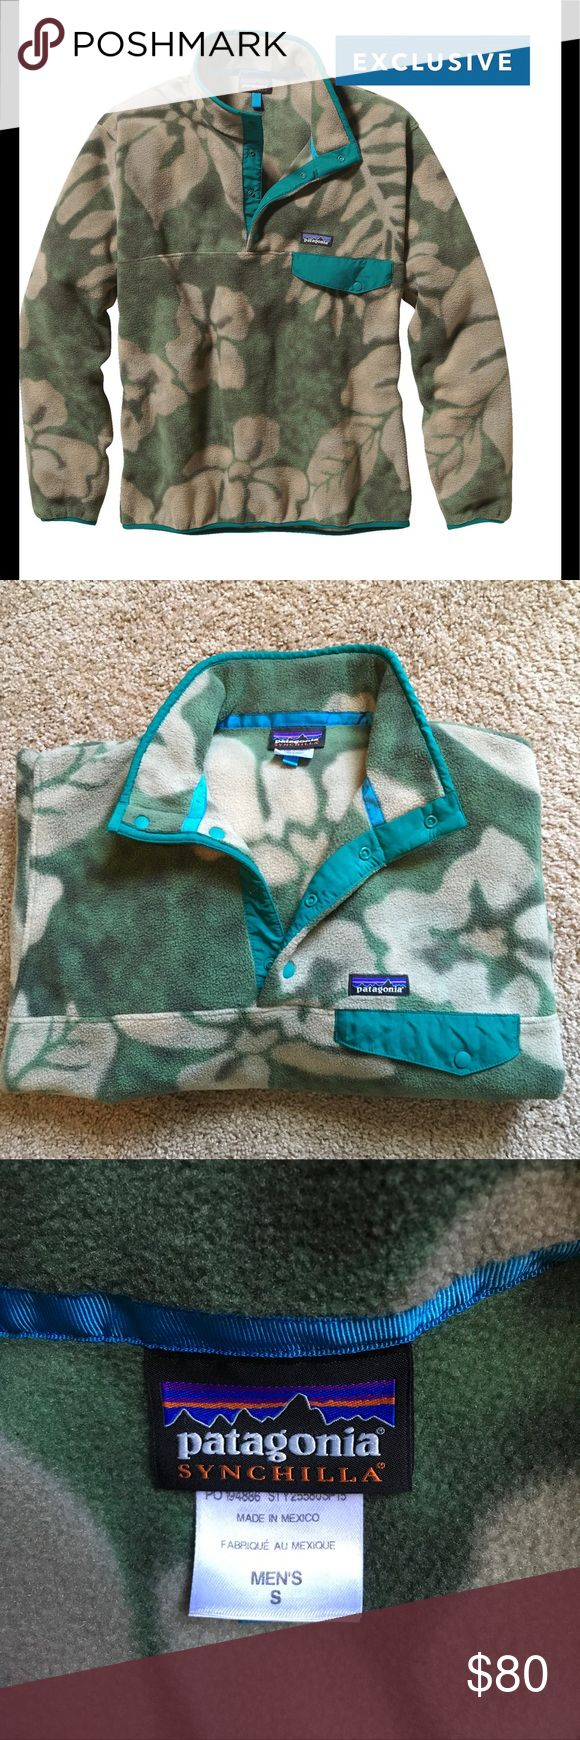 Patagonia Synchilla Snap-T Fleece Pullover Patagonia Synchilla Snap-T Fleece Pullover Spice Garden. Hawaiian print. Excellent Condition. Only worn Once. Exclusive print that is unavailable now. Patagonia Sweaters